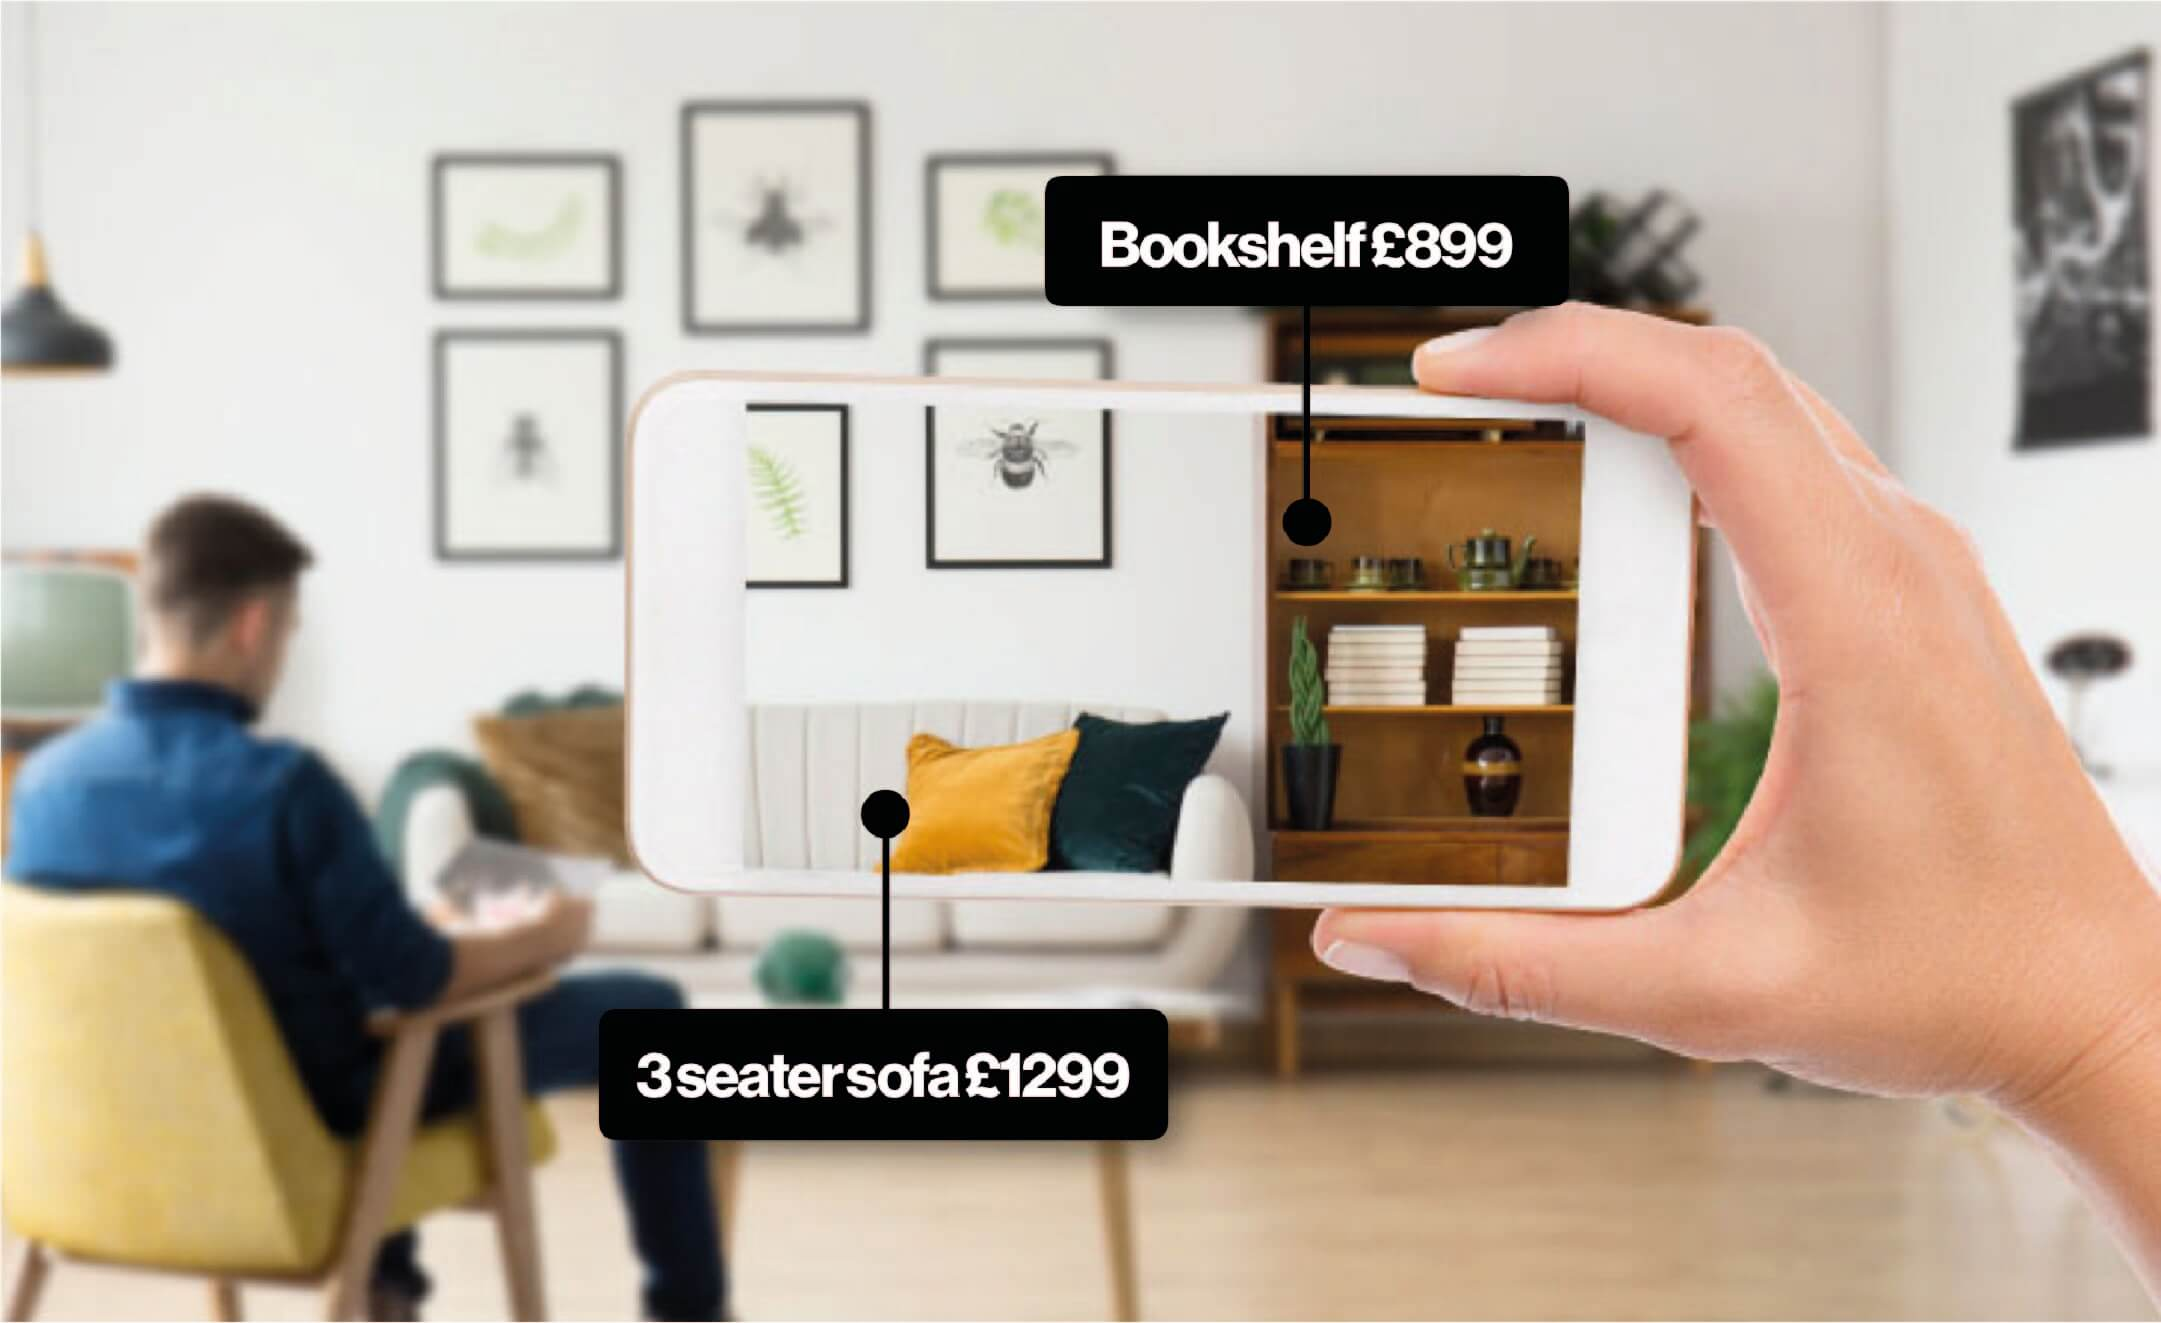 Hand holding a smartphone recording a video survey of a living room, with a man sat on an armchair. Items are highlighted showing a Bookshelf valued at £800 and a 3 seater couch valued at £1299.